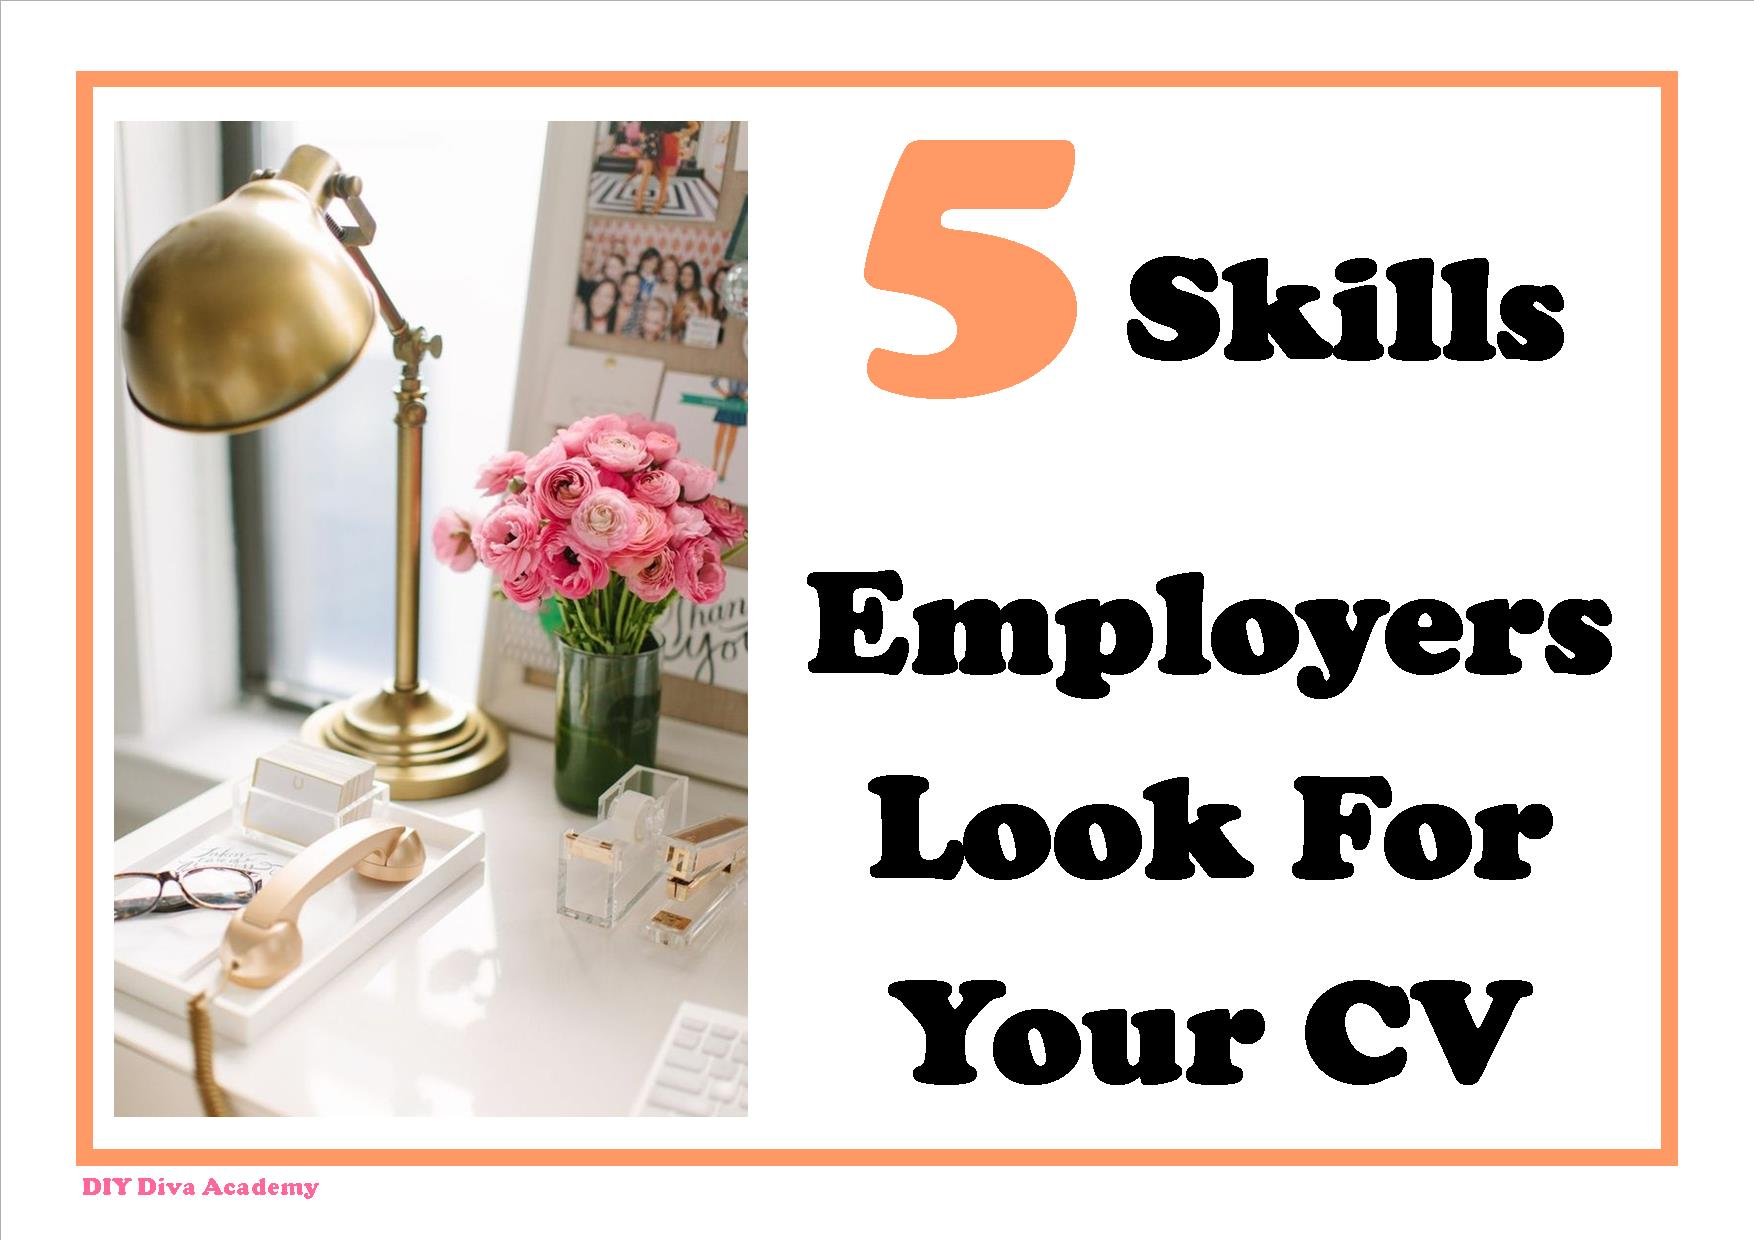 5 skills employers look for on your cv